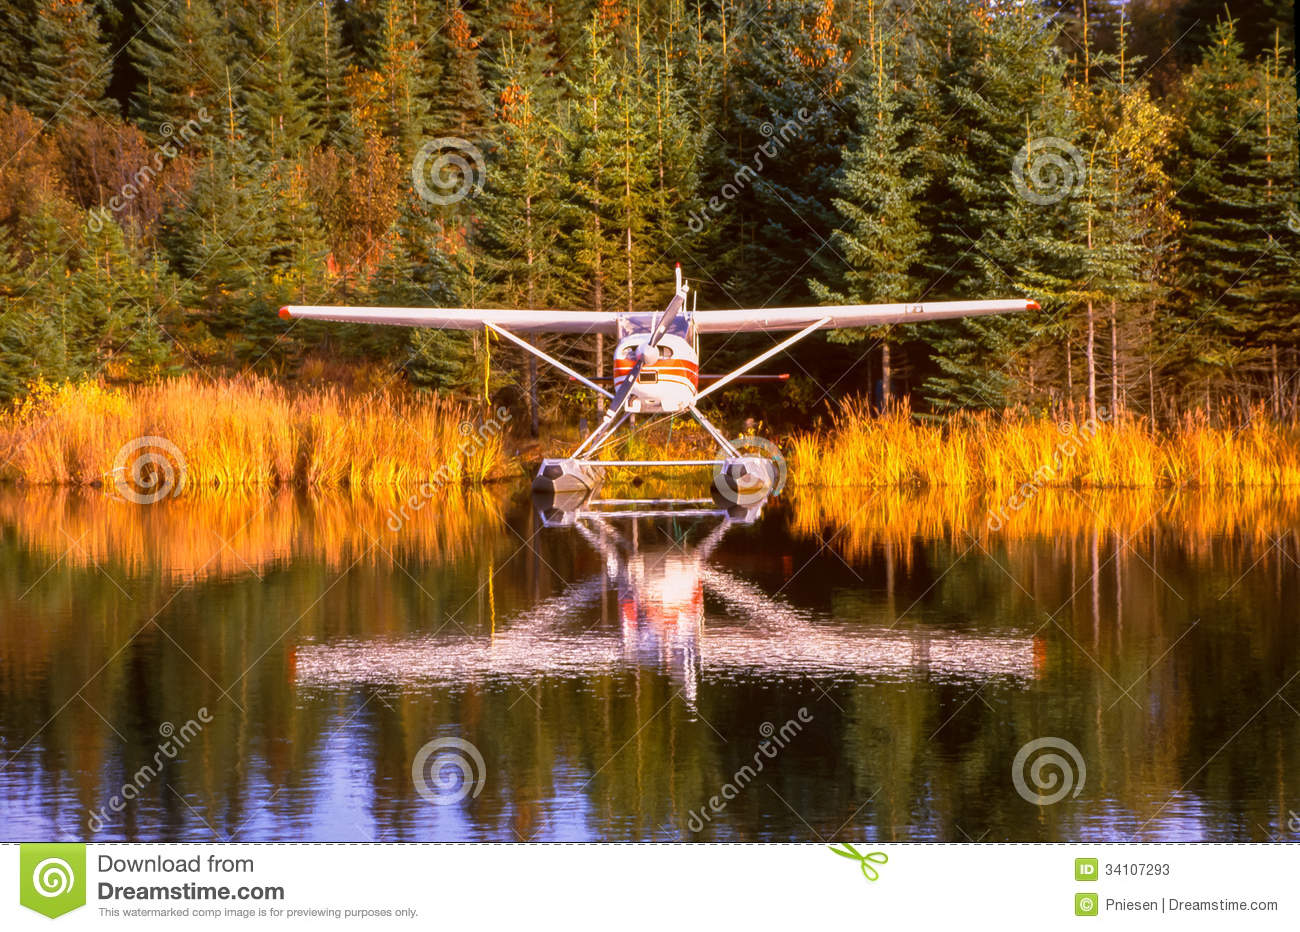 Fall Landscape Wallpaper Alaska Float Plane Moored At Dock Amid Foliage Reflections